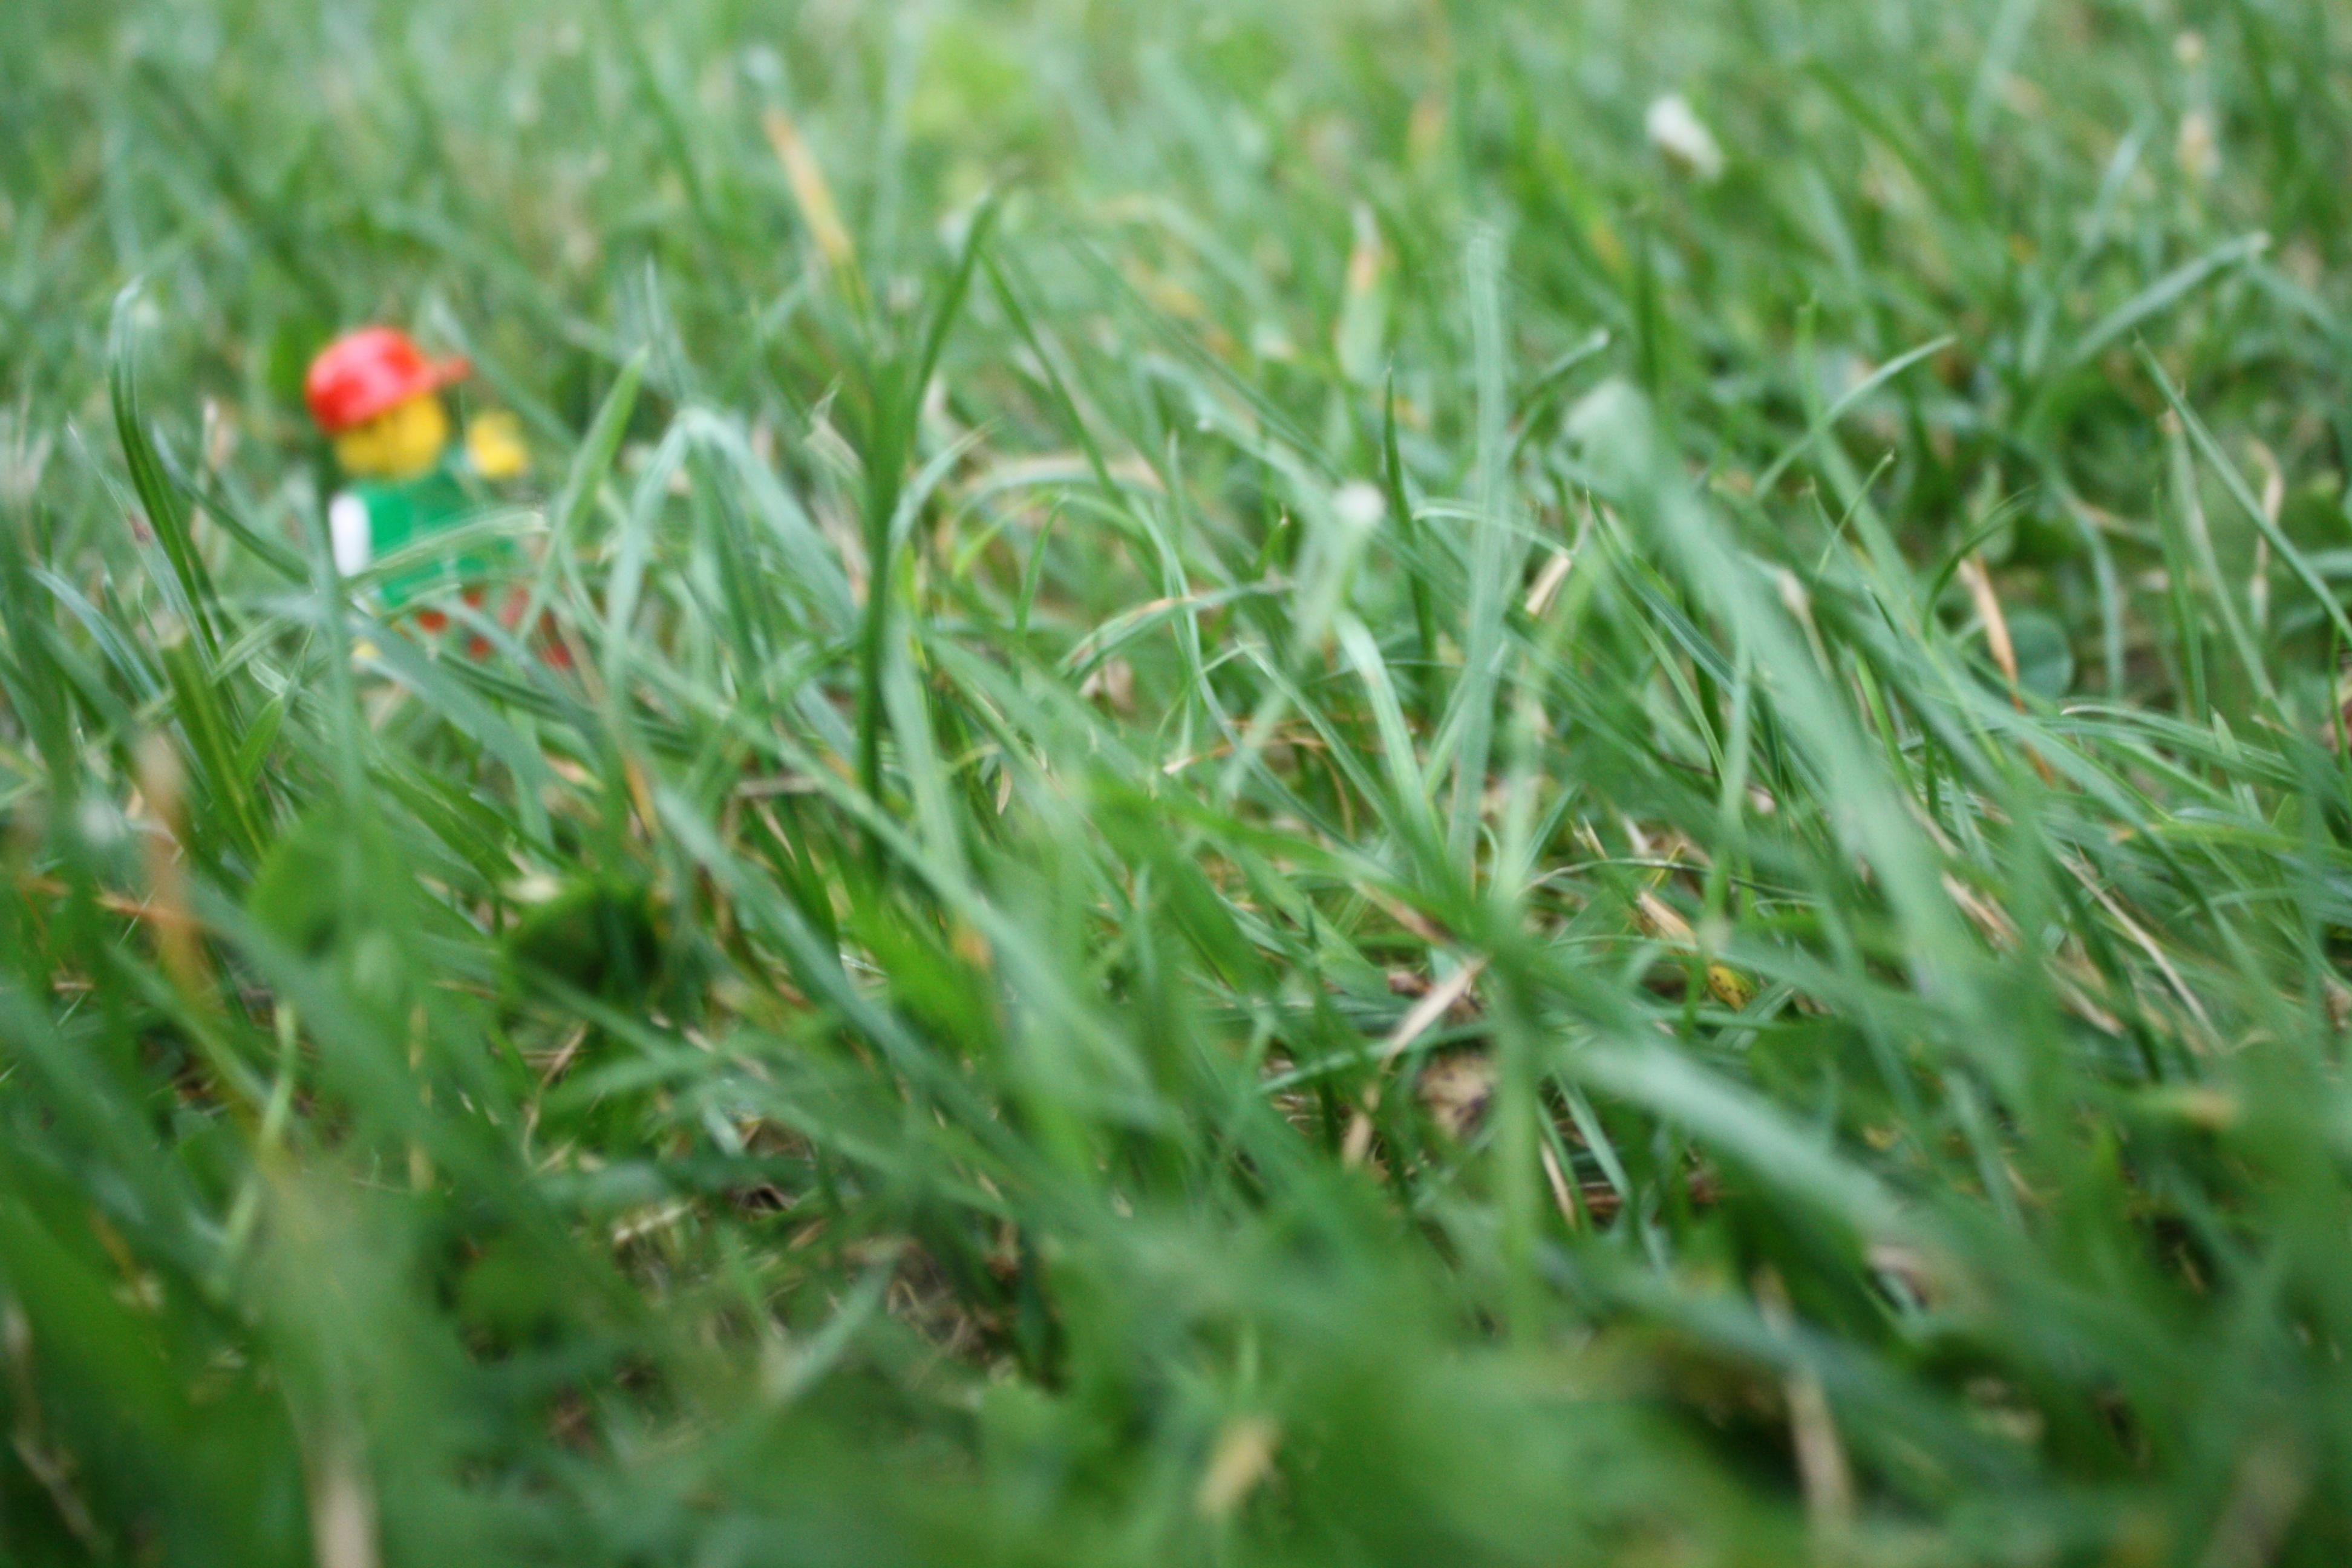 Grass Is An Example Of An Autotroph Because It Uses Sunlight To